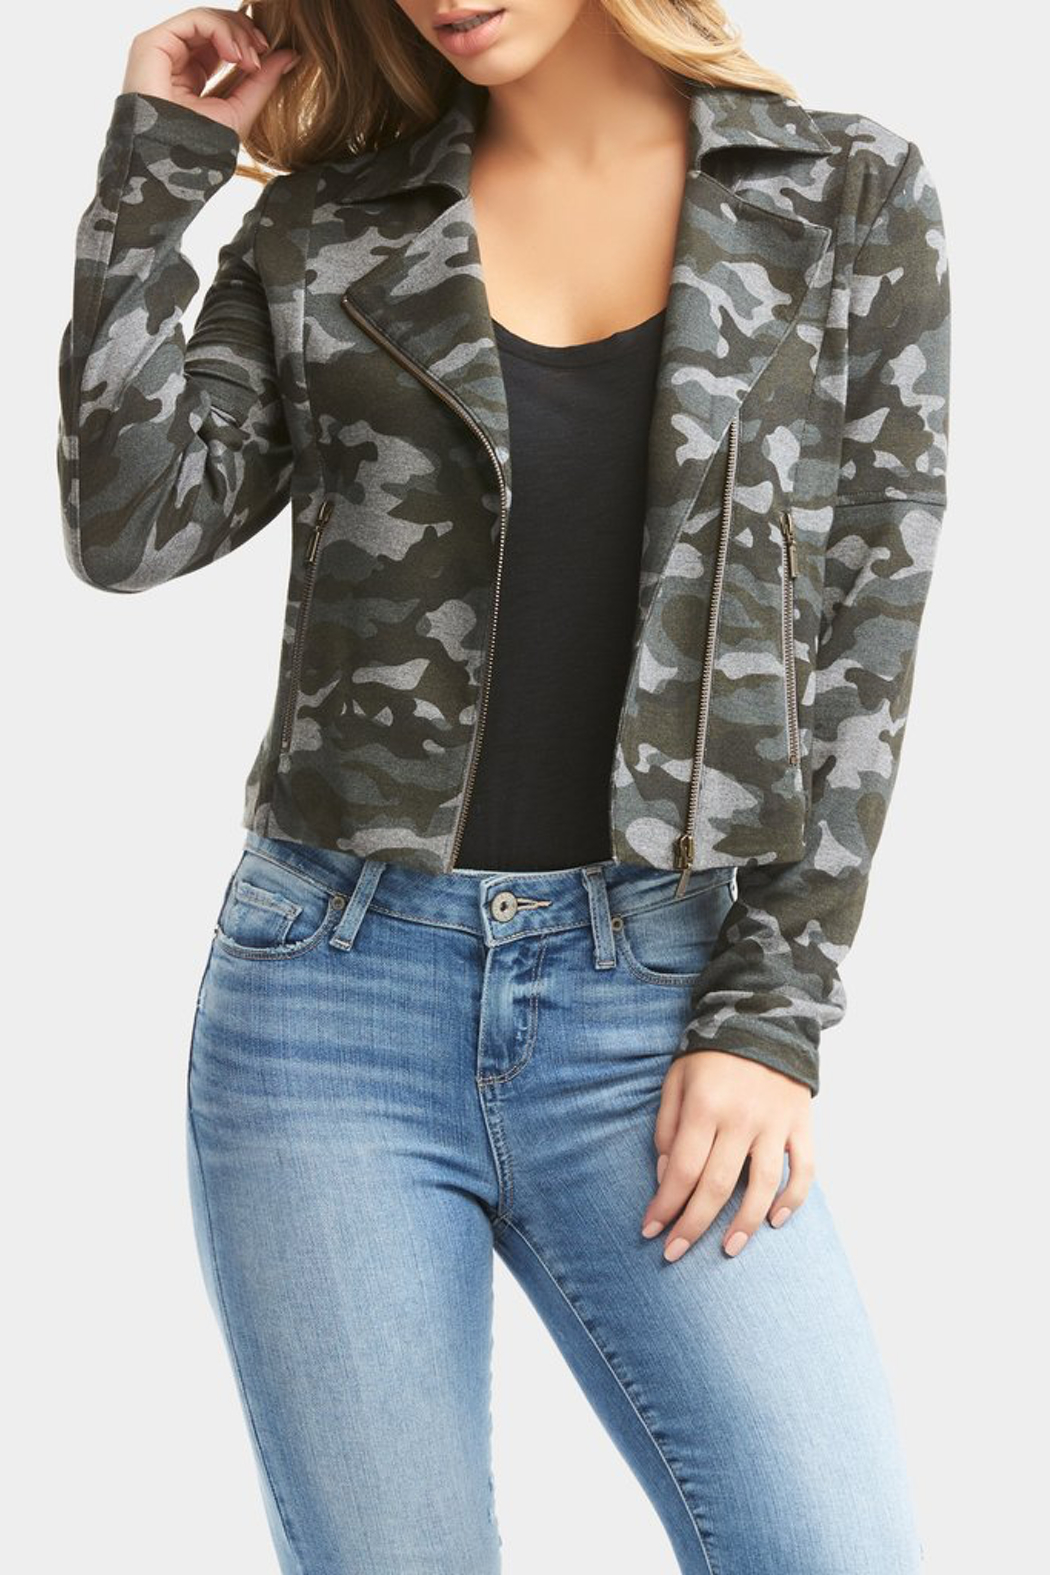 Tart Collections Gracia French Terry Moto Jacket - Side Cropped Image